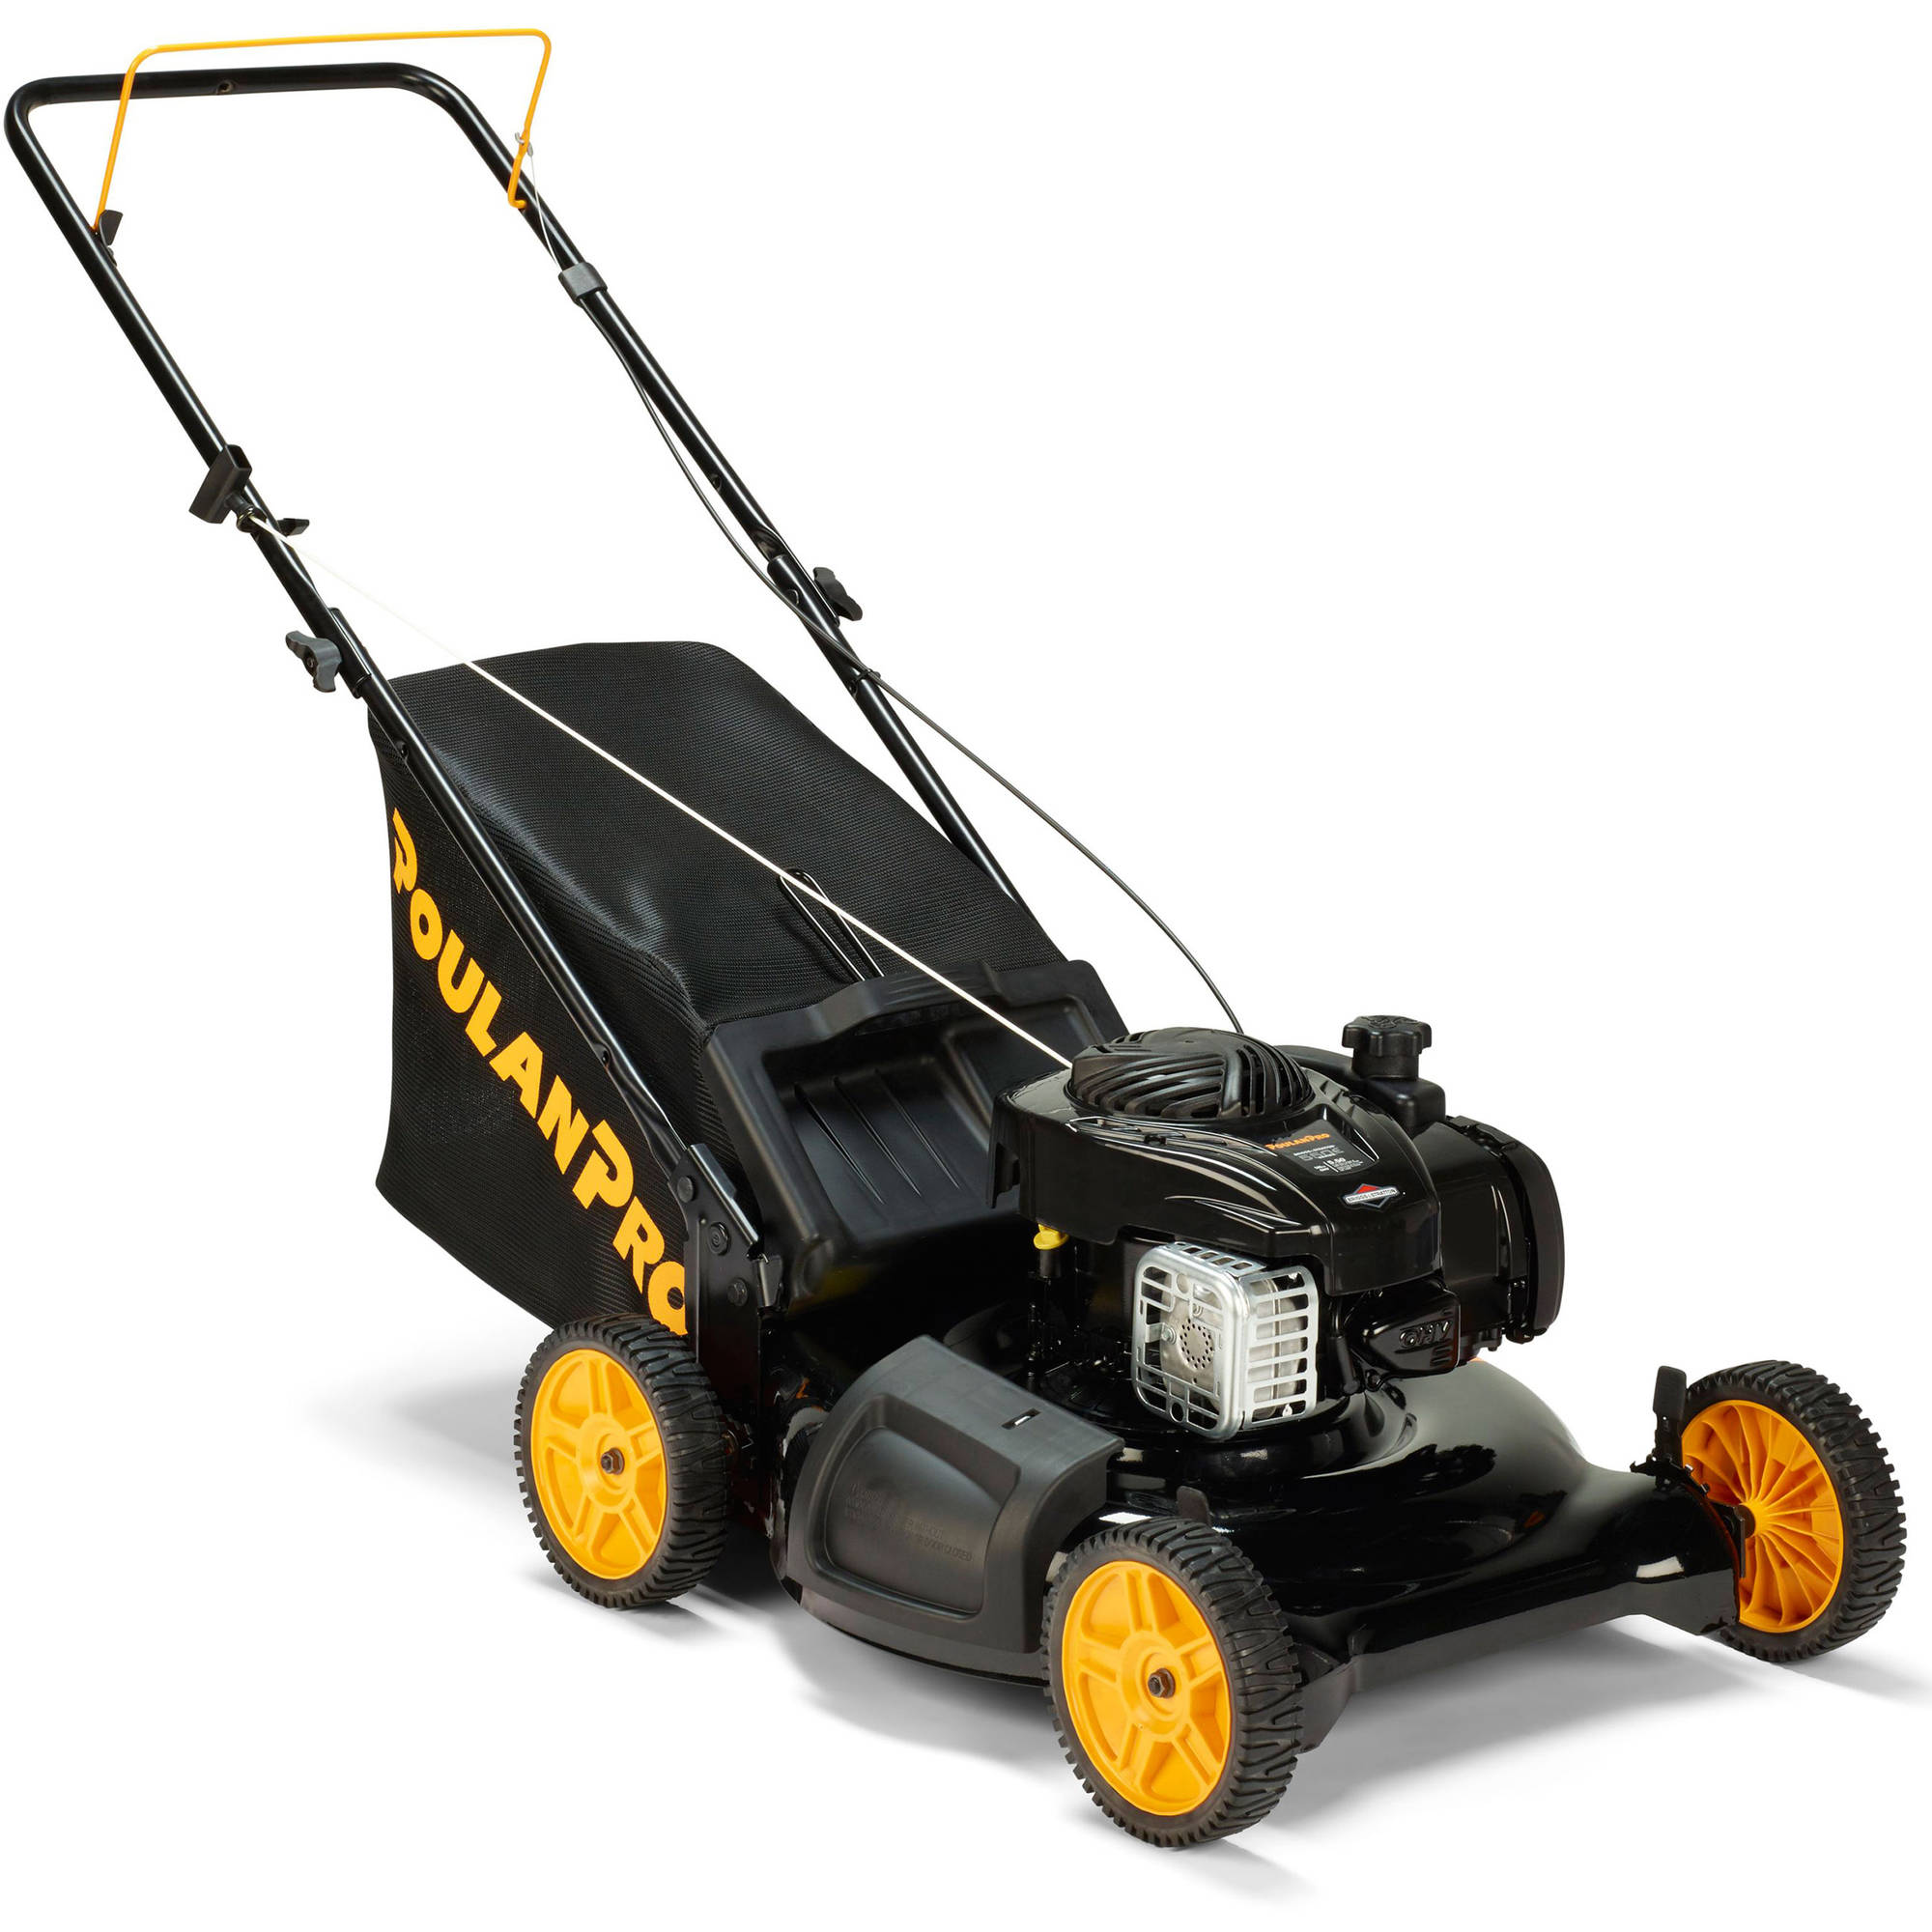 """Poulan Pro 21"""" 140cc 3-in-1 Lawnmower with side-discharge"""